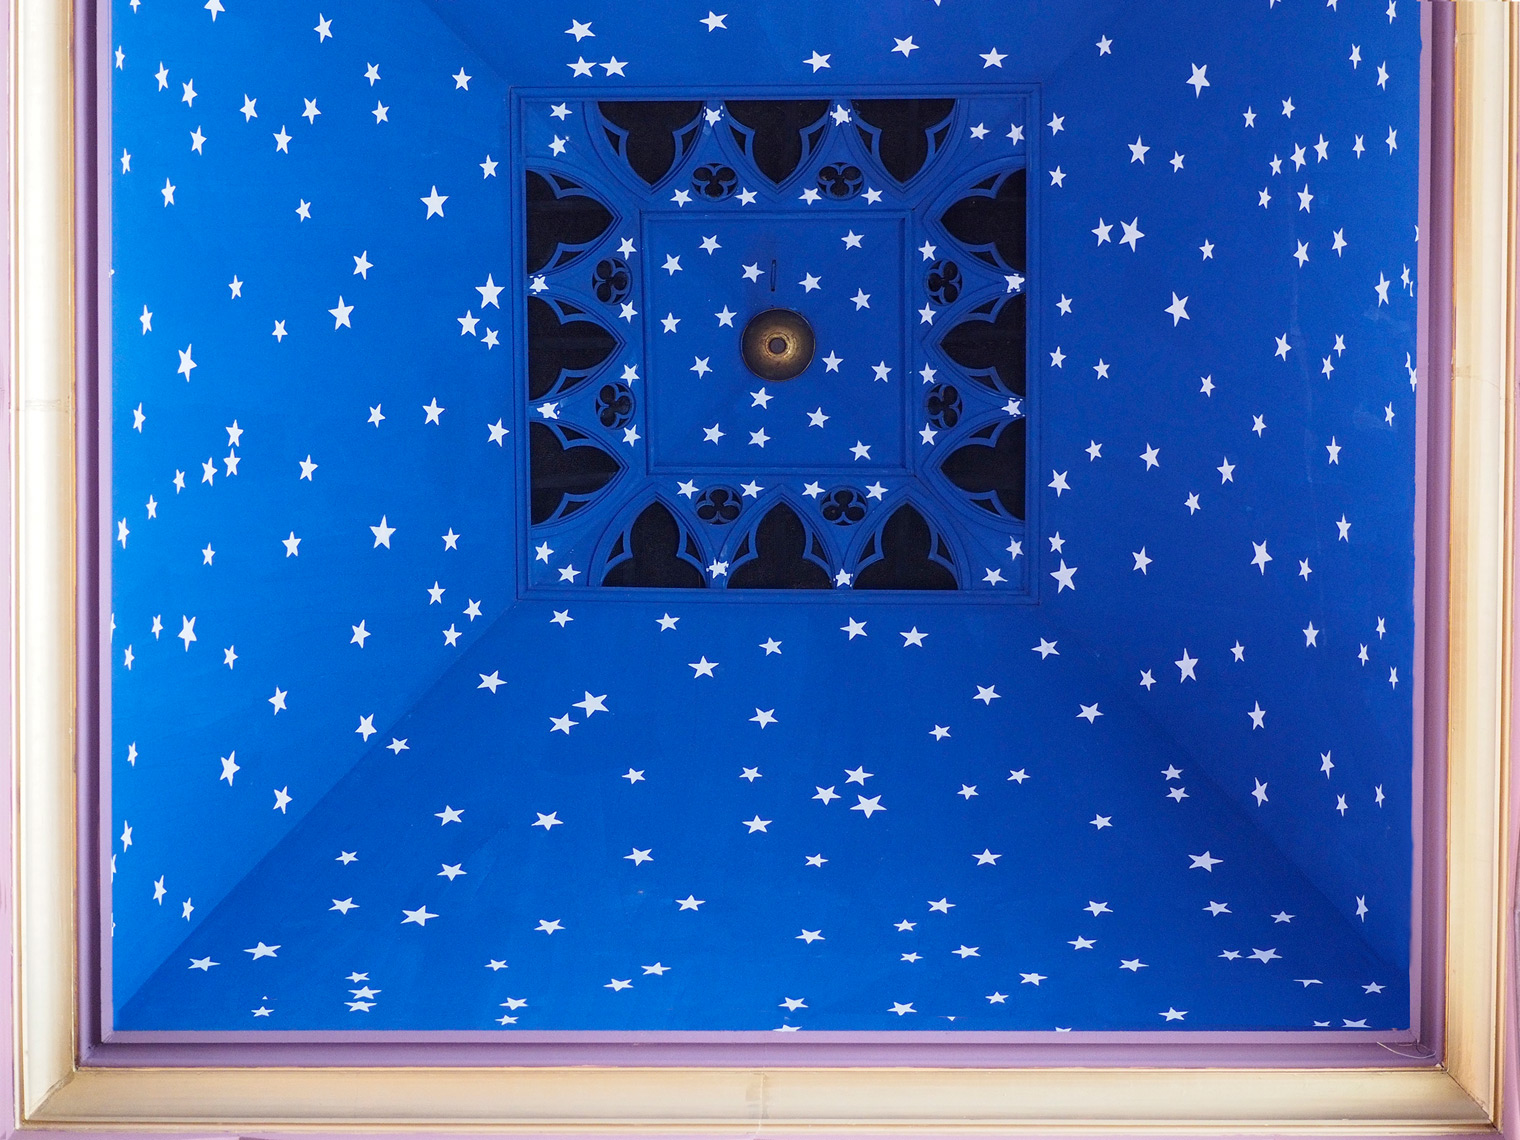 Starry_Ceiling